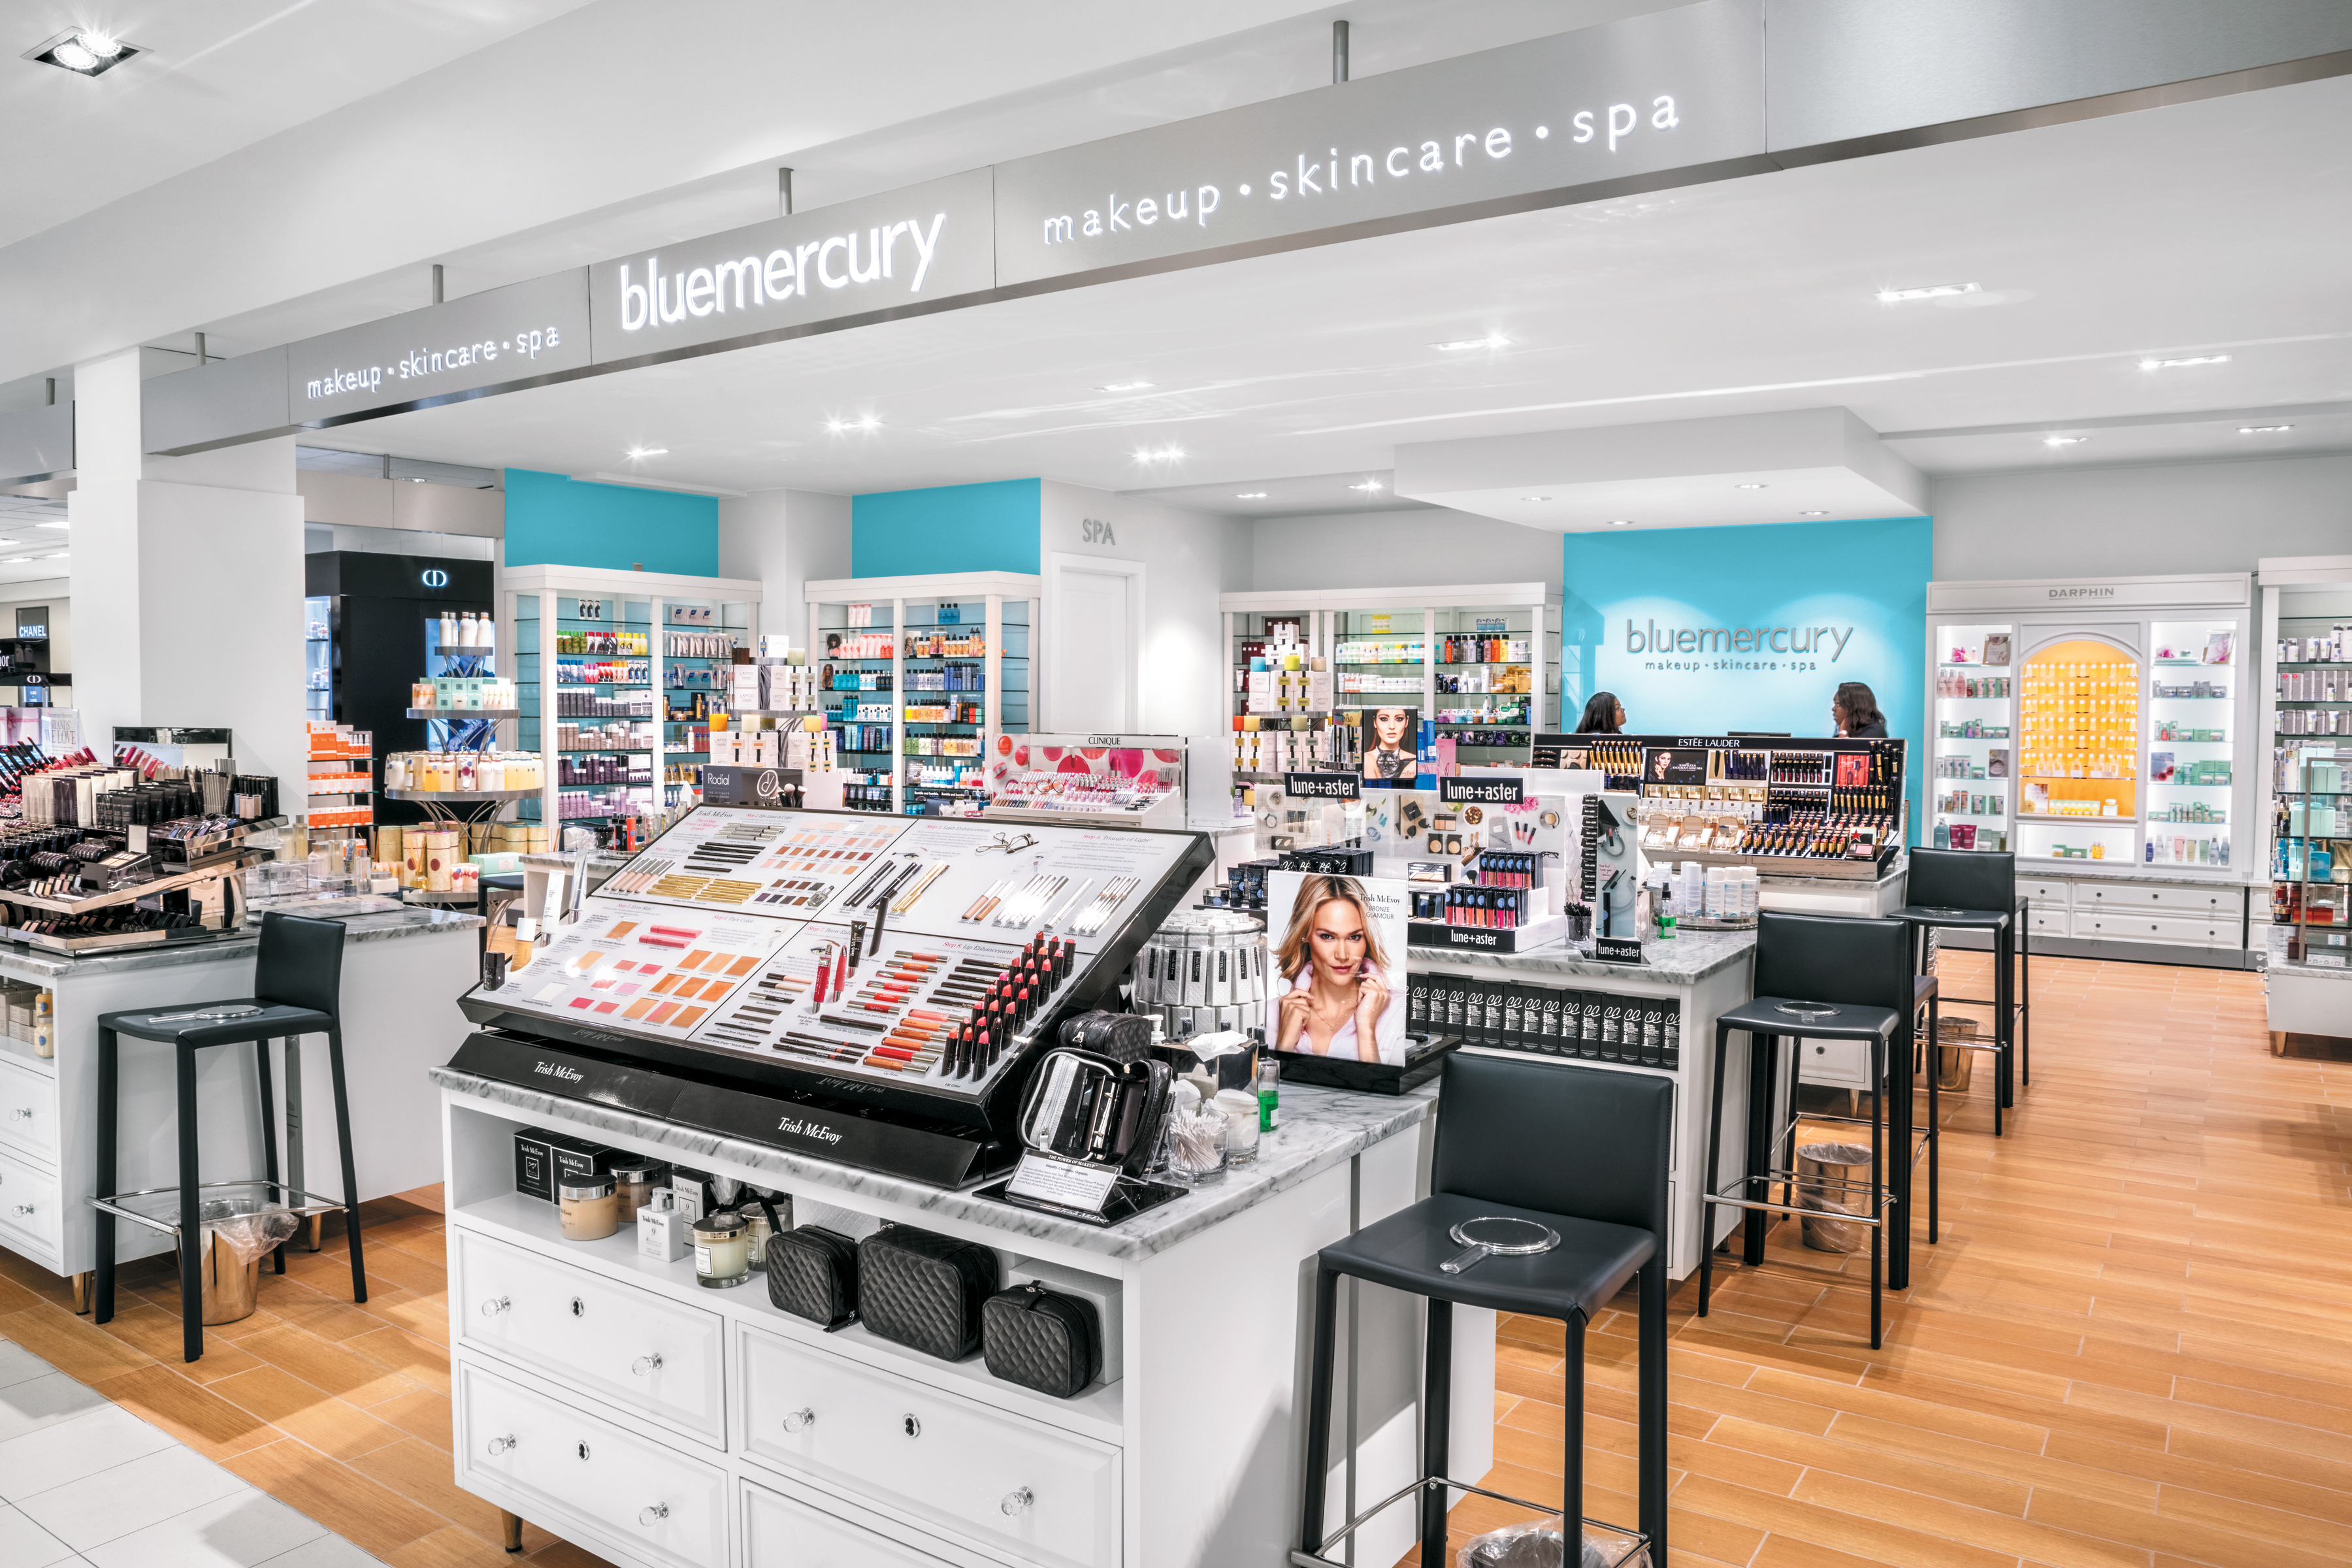 A Bluemercury boutique within a Macy's department stores.